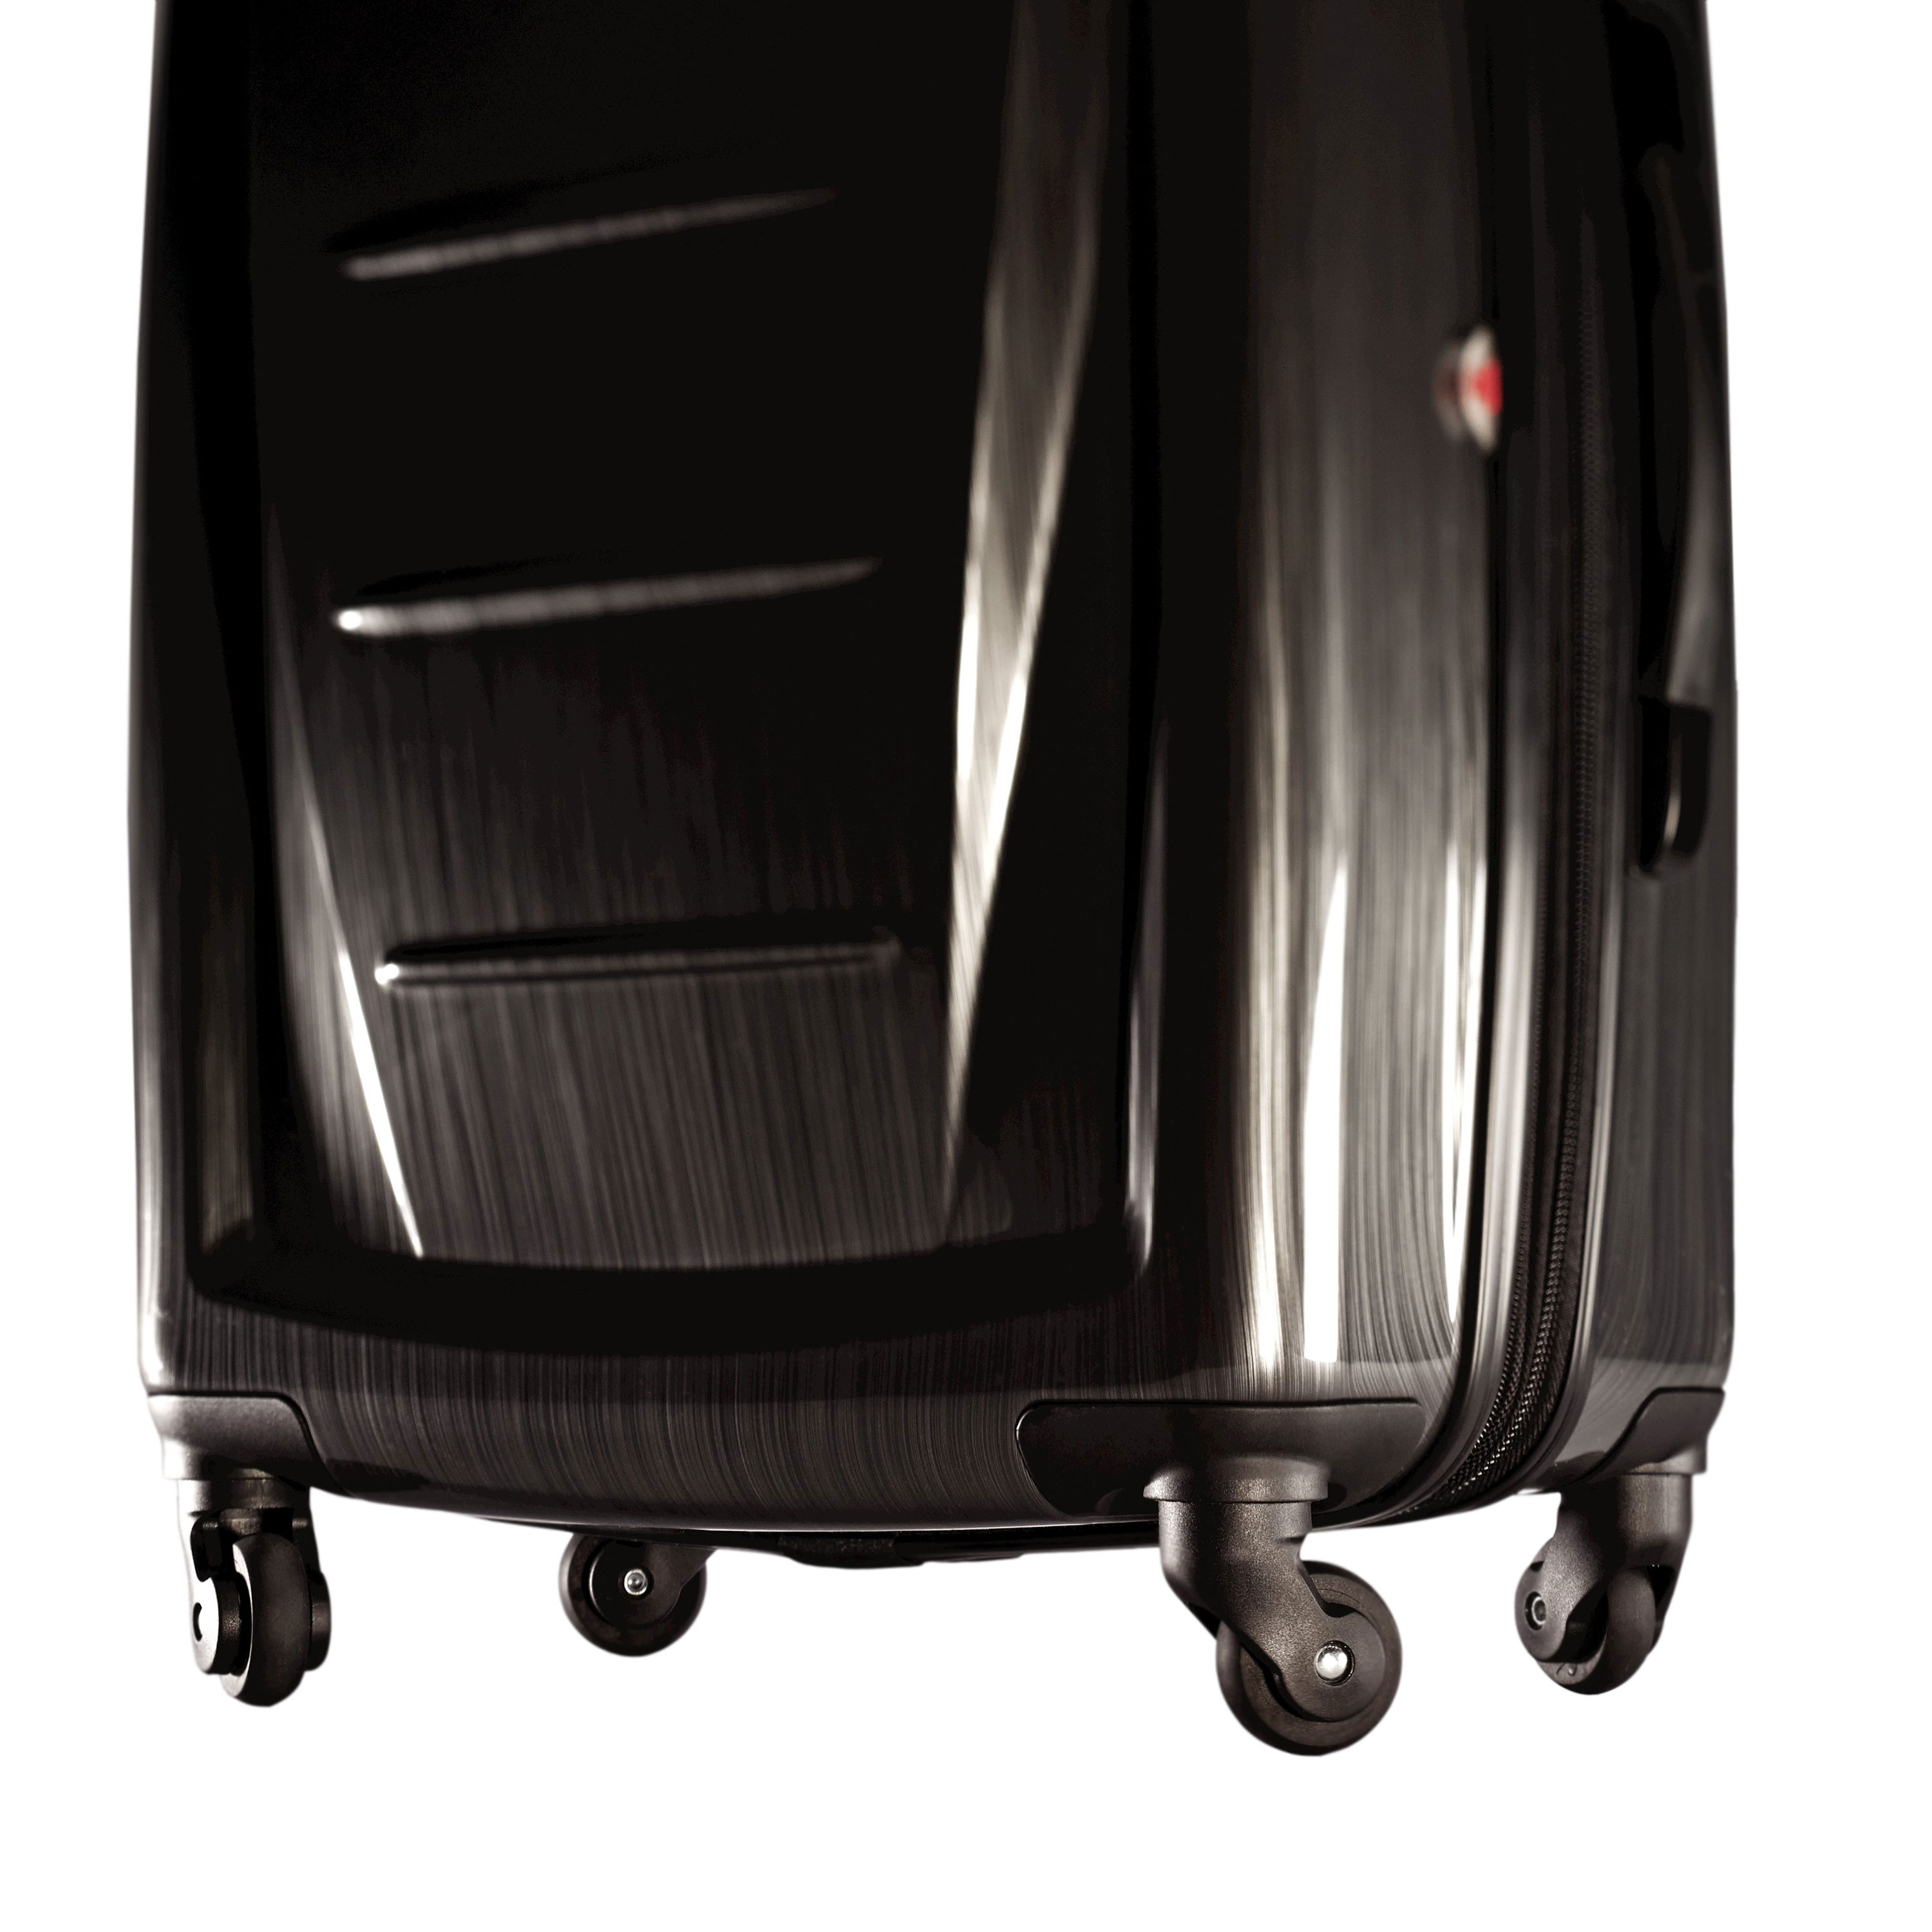 Samsonite-Winfield-2-Fashion-Spinner-Luggage thumbnail 12